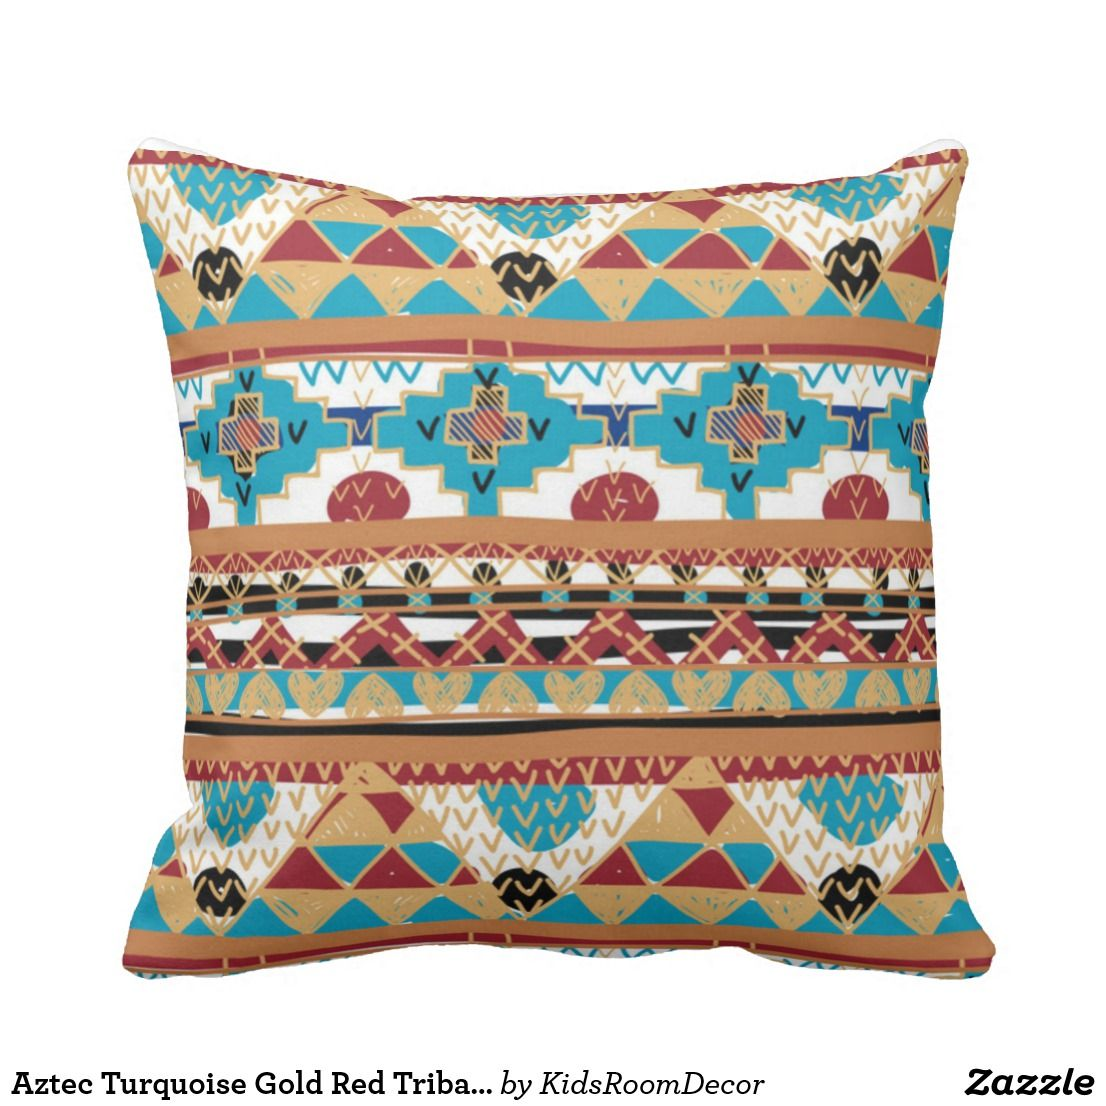 Aztec Turquoise Gold Red Tribal Pattern Throw Pillow Designer Pillows Patterns